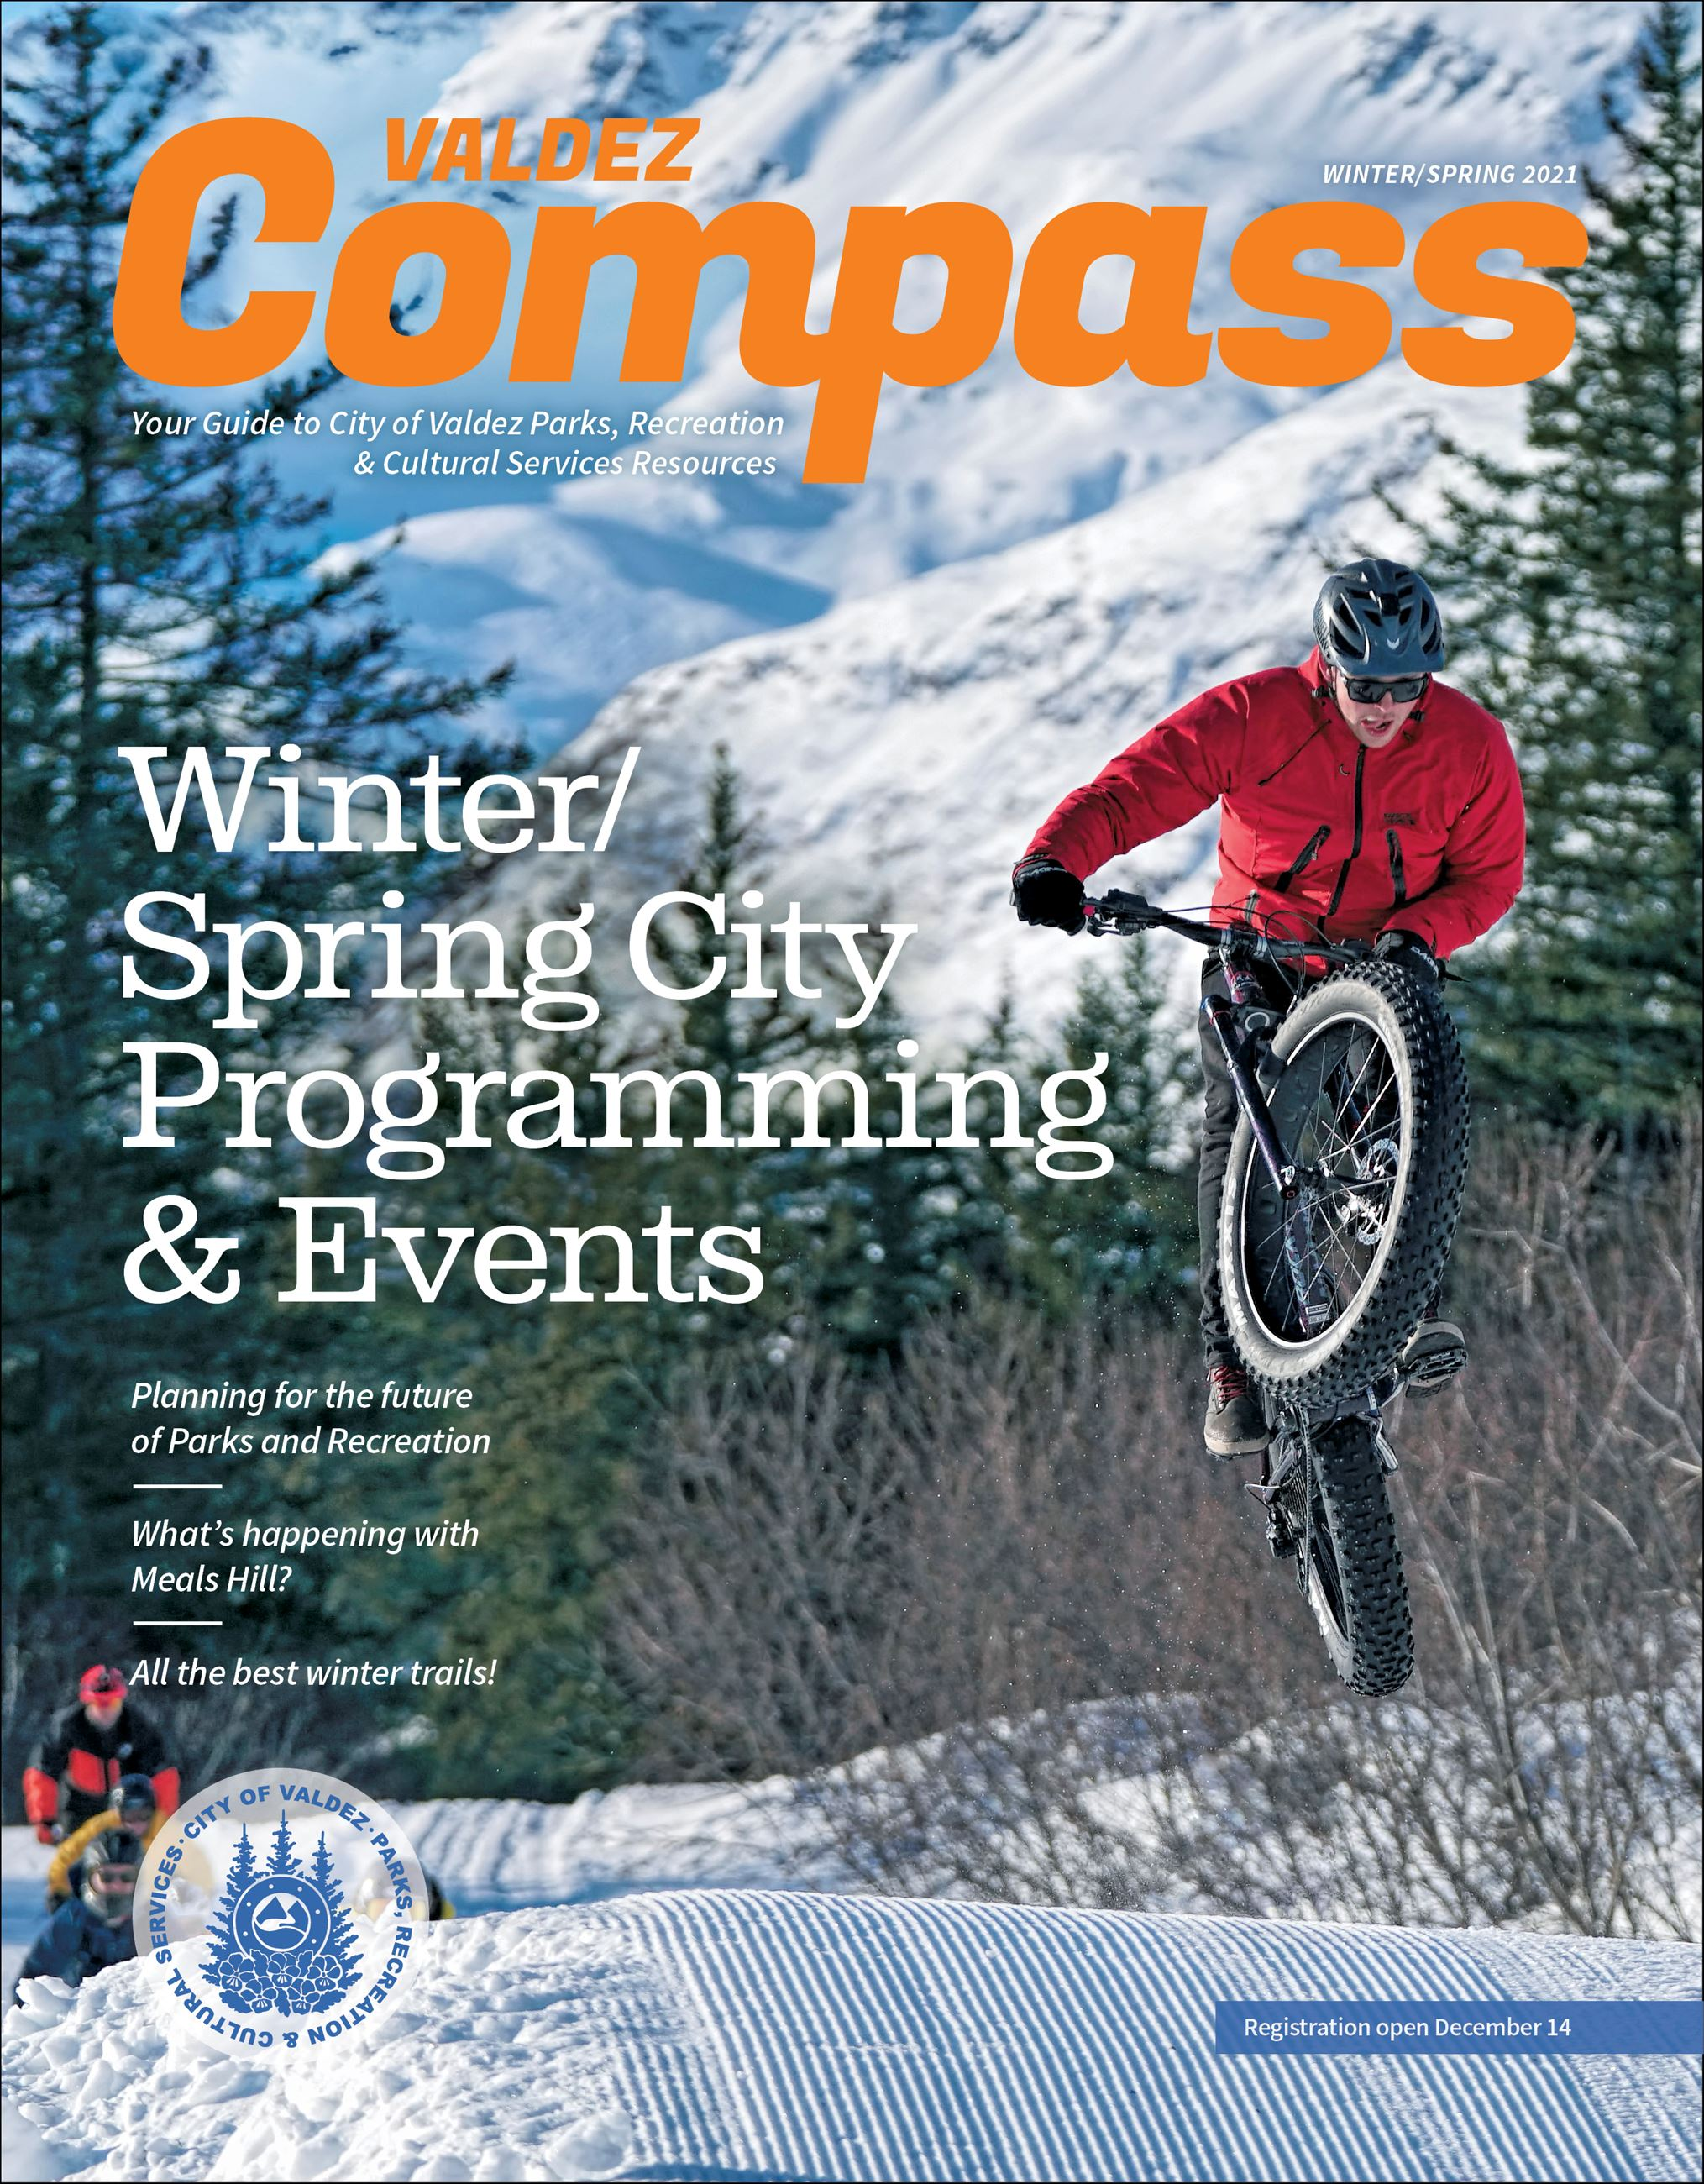 Winter/Spring Activity Guide Cover